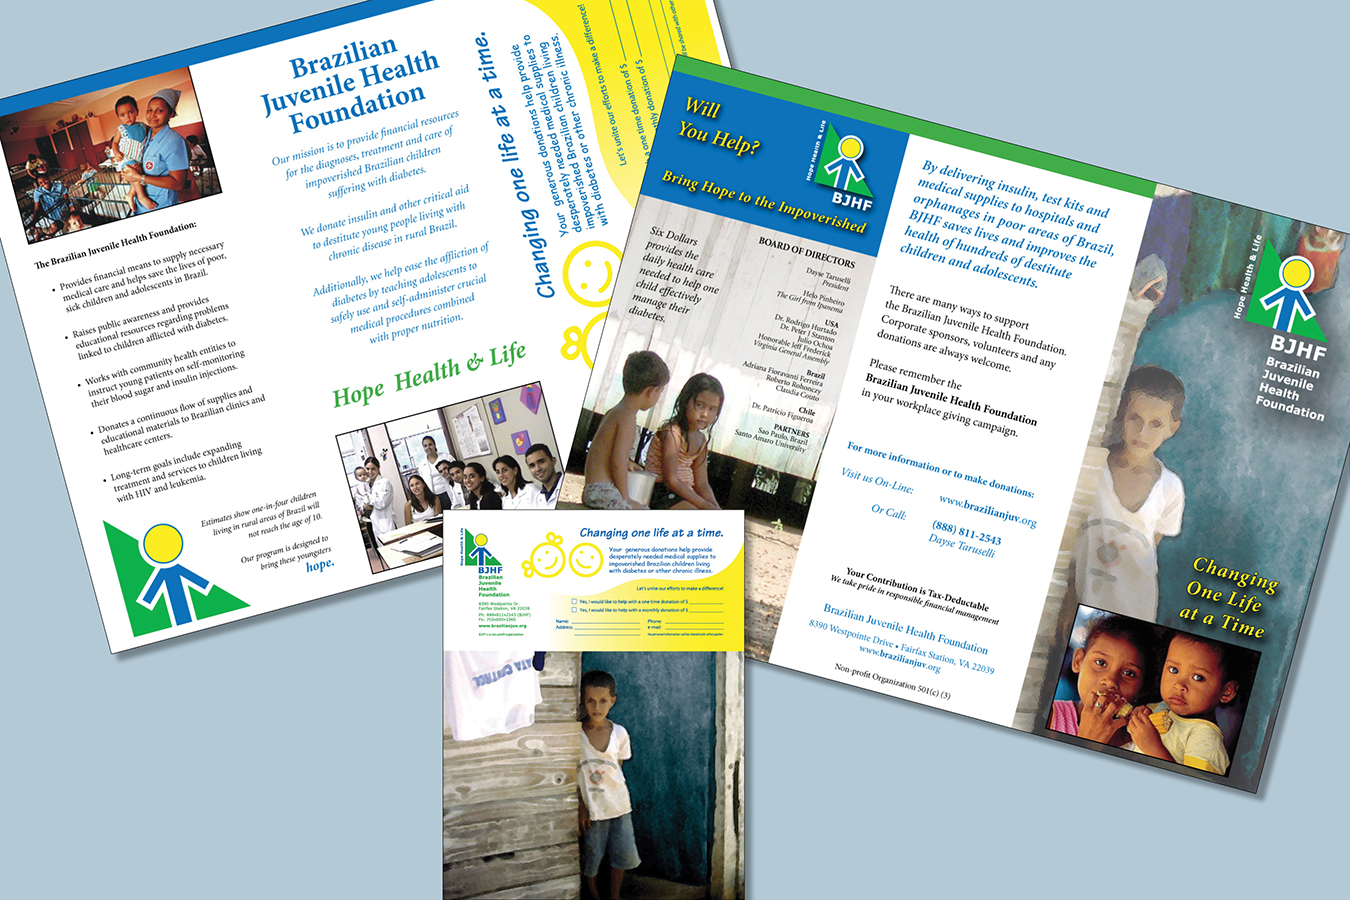 Brochures 2 : Brazilian Juvenile Health Foundation Fund Raiser